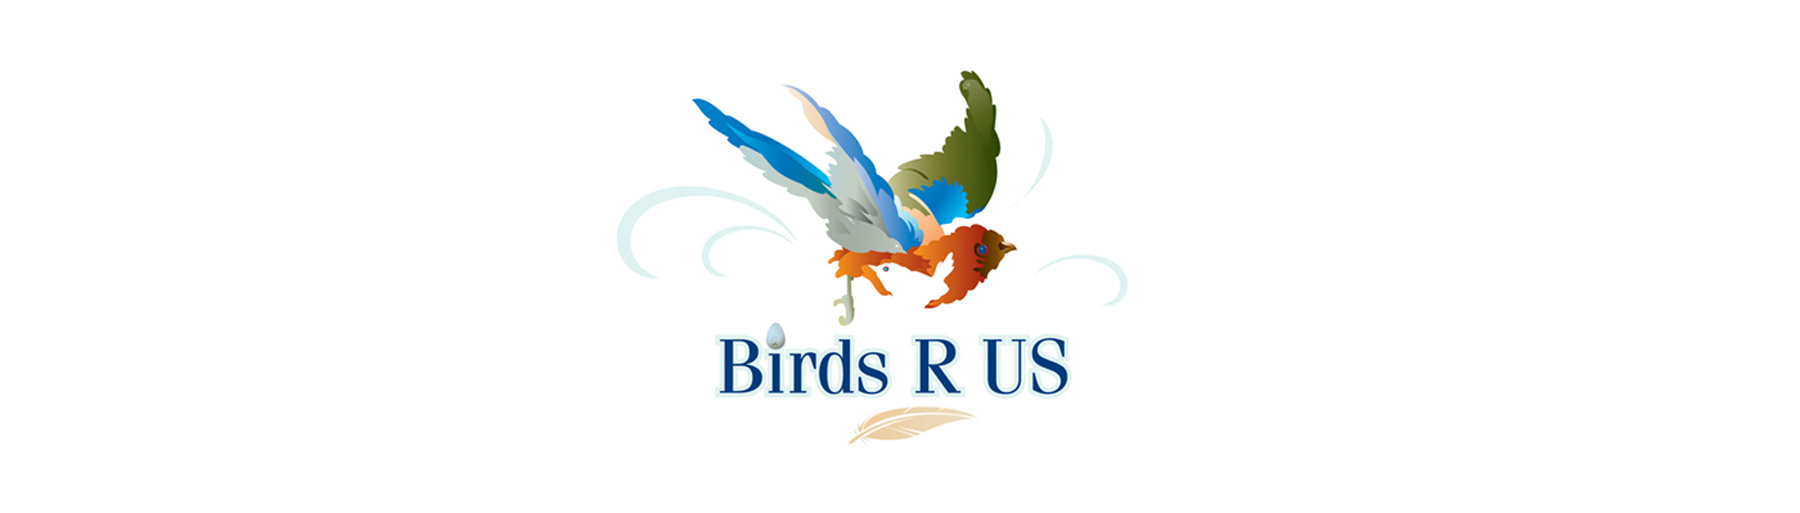 birds are us banner on white background